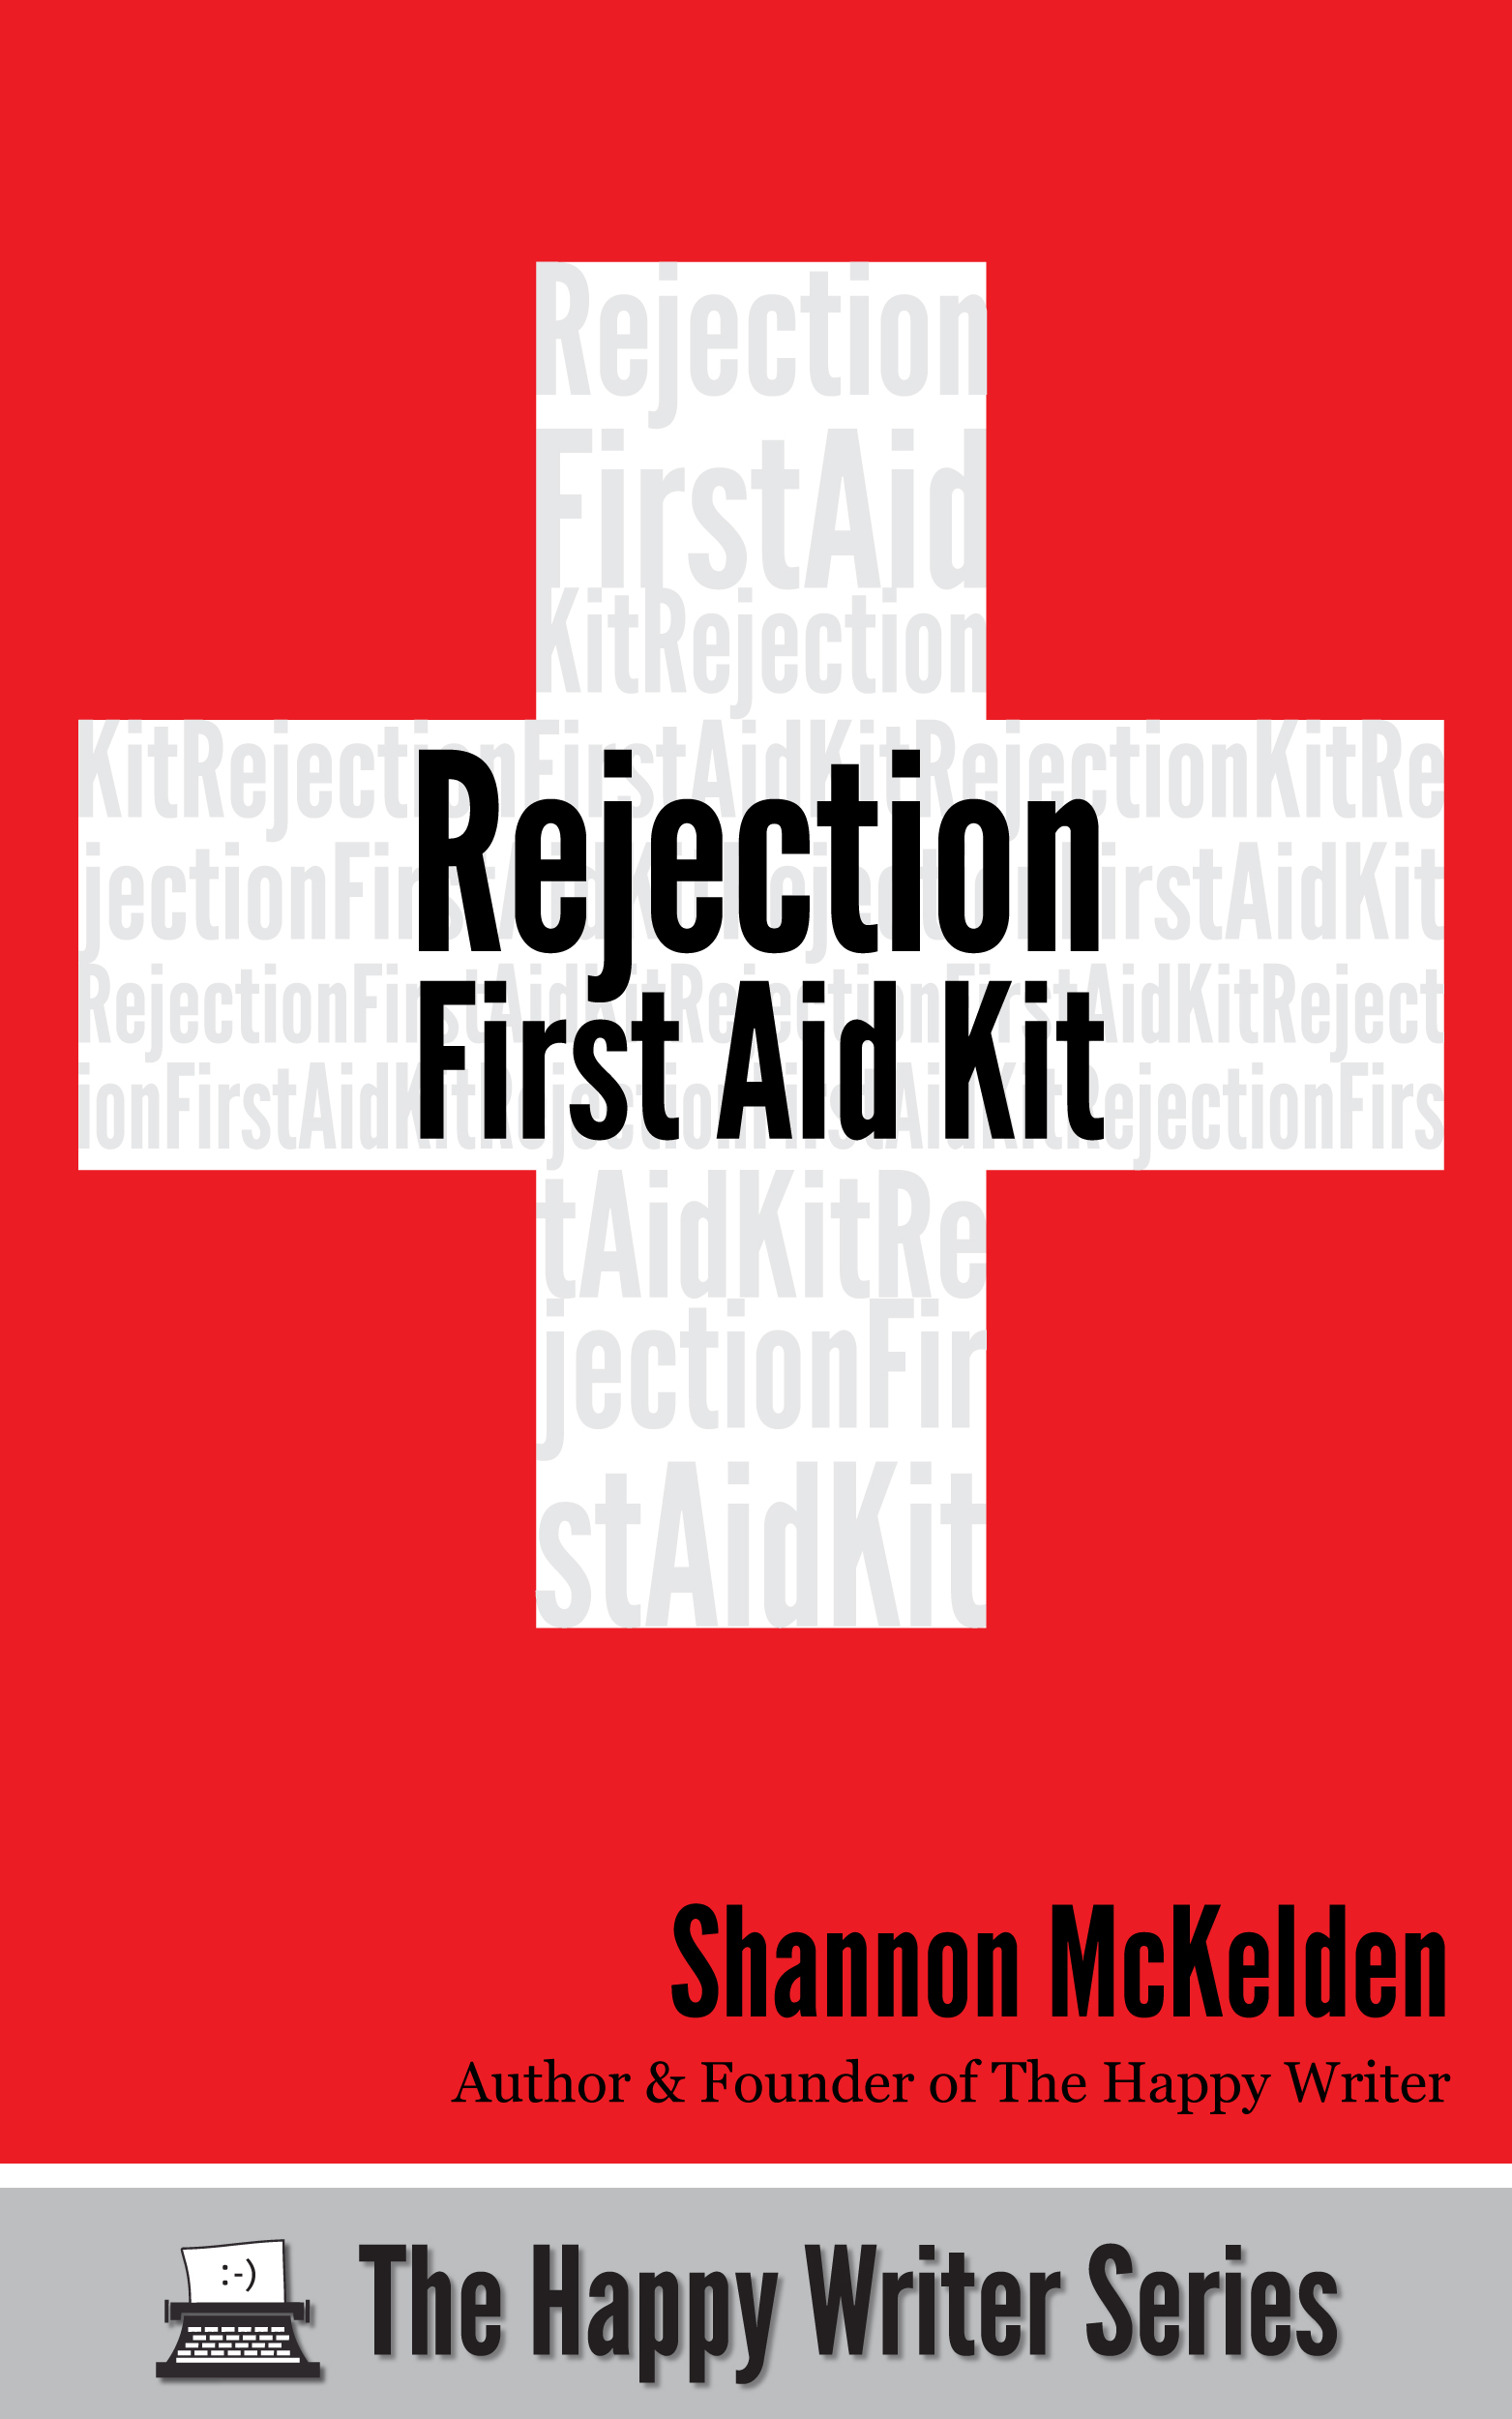 CV---Rejection-First-Aid-Kit.jpg